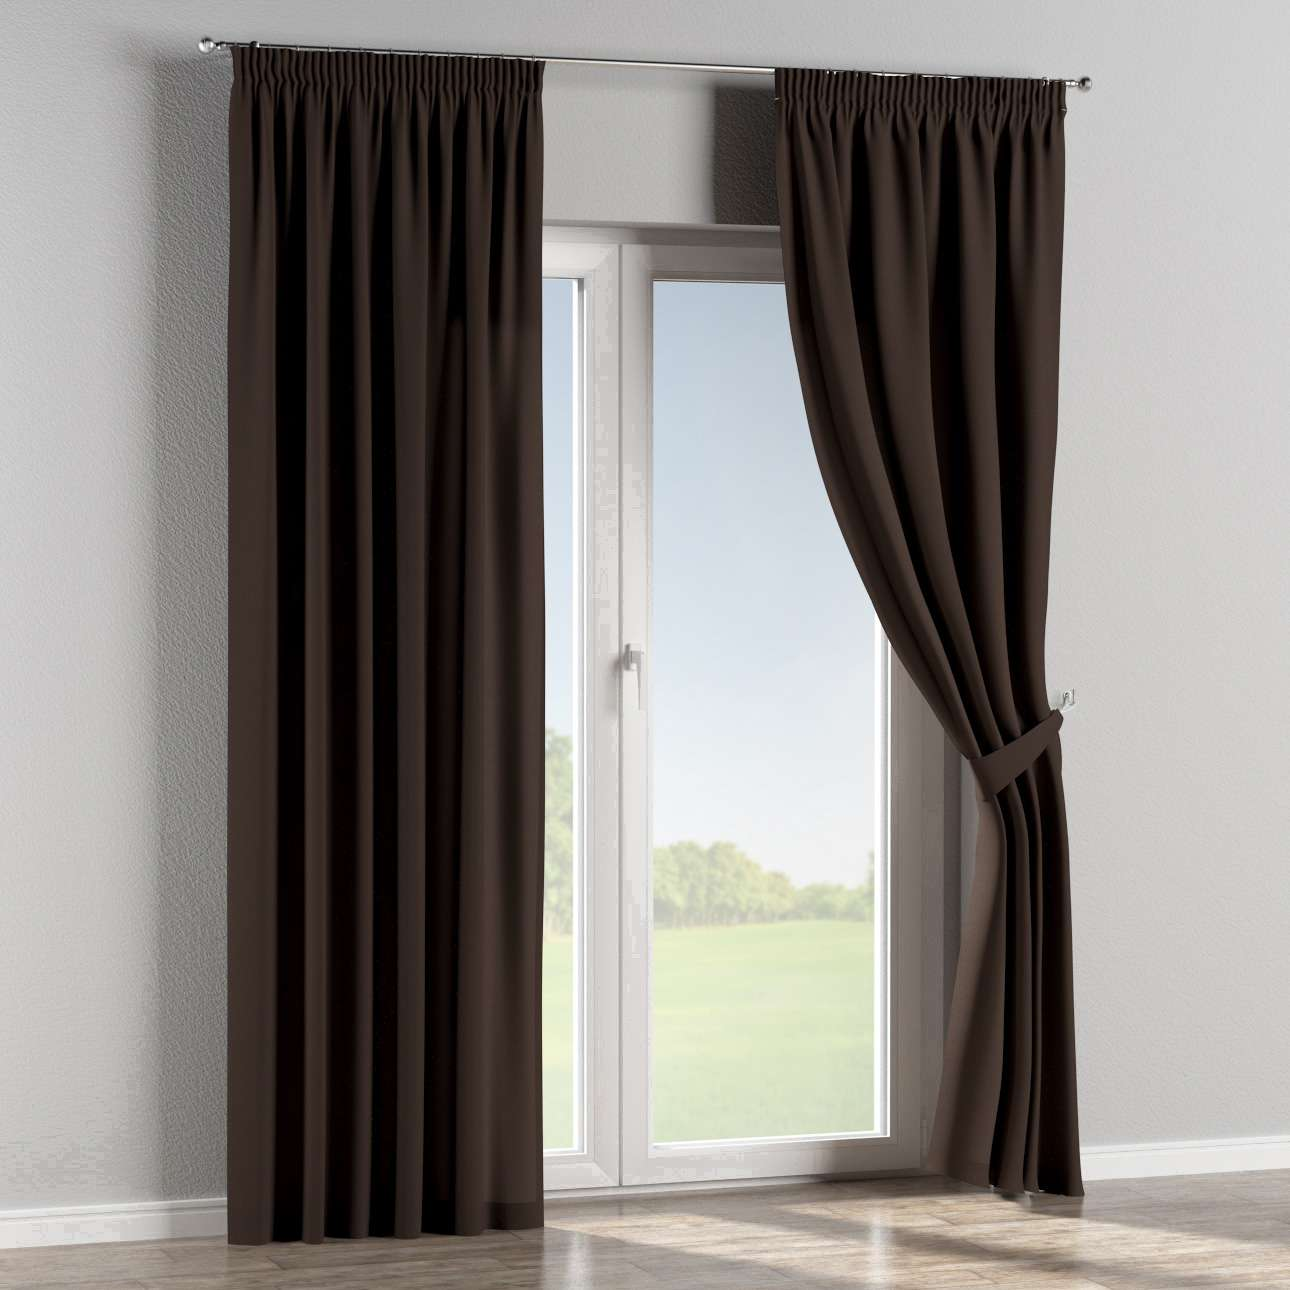 Pencil pleat curtains 130 x 260 cm (51 x 102 inch) in collection Panama Cotton, fabric: 702-03